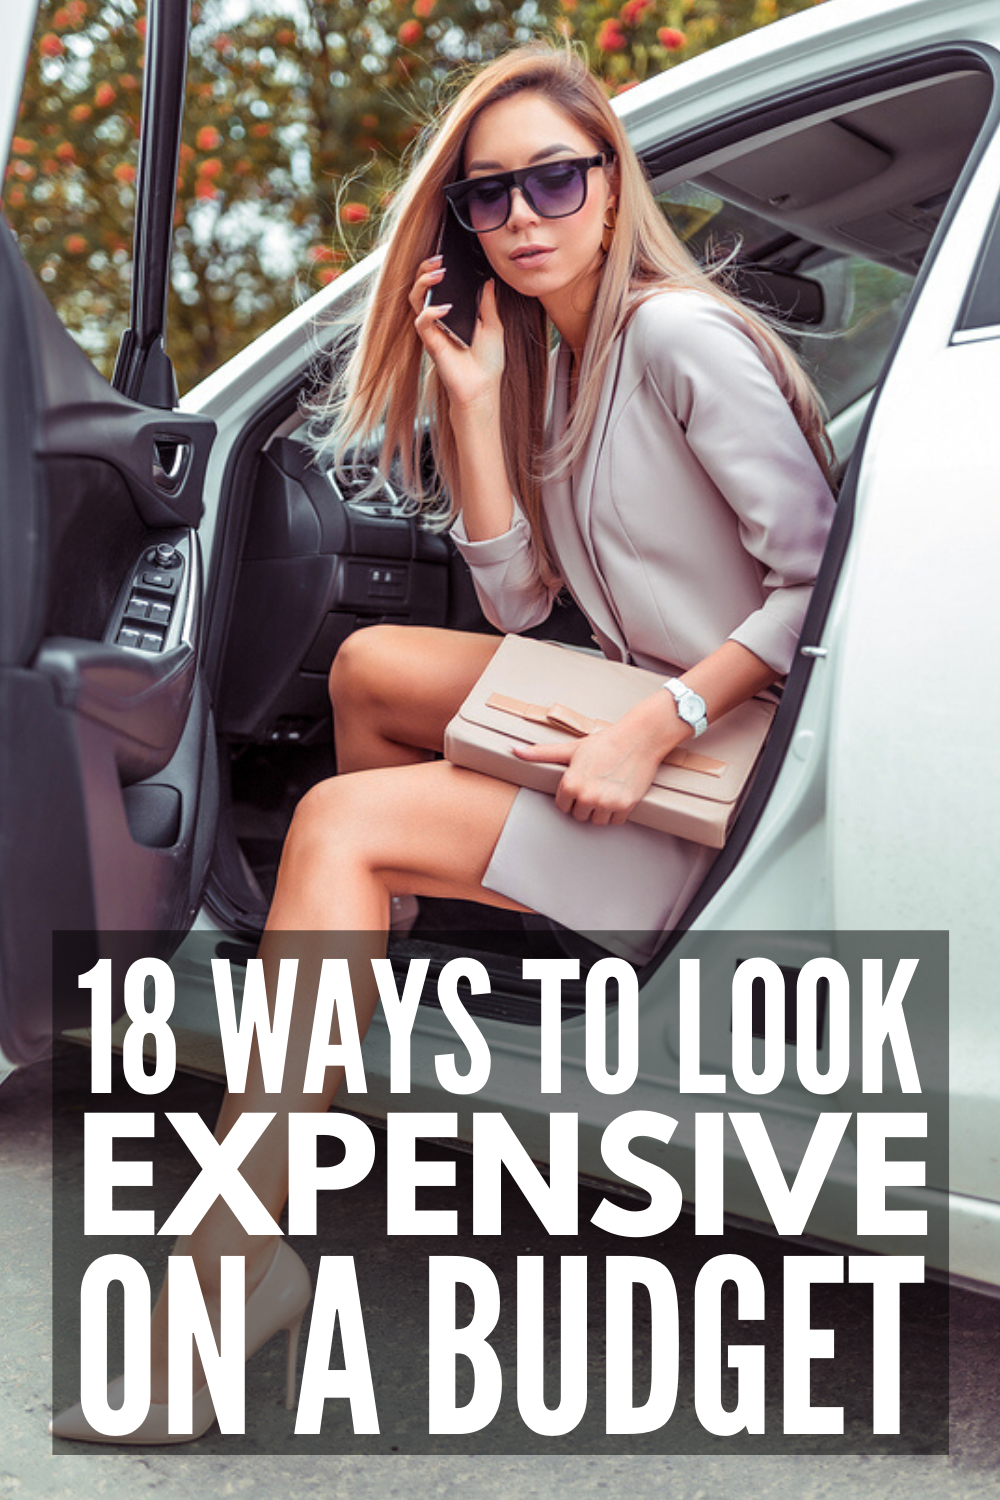 How to Look Expensive on a Budget: 18 Tips Every Girl Needs